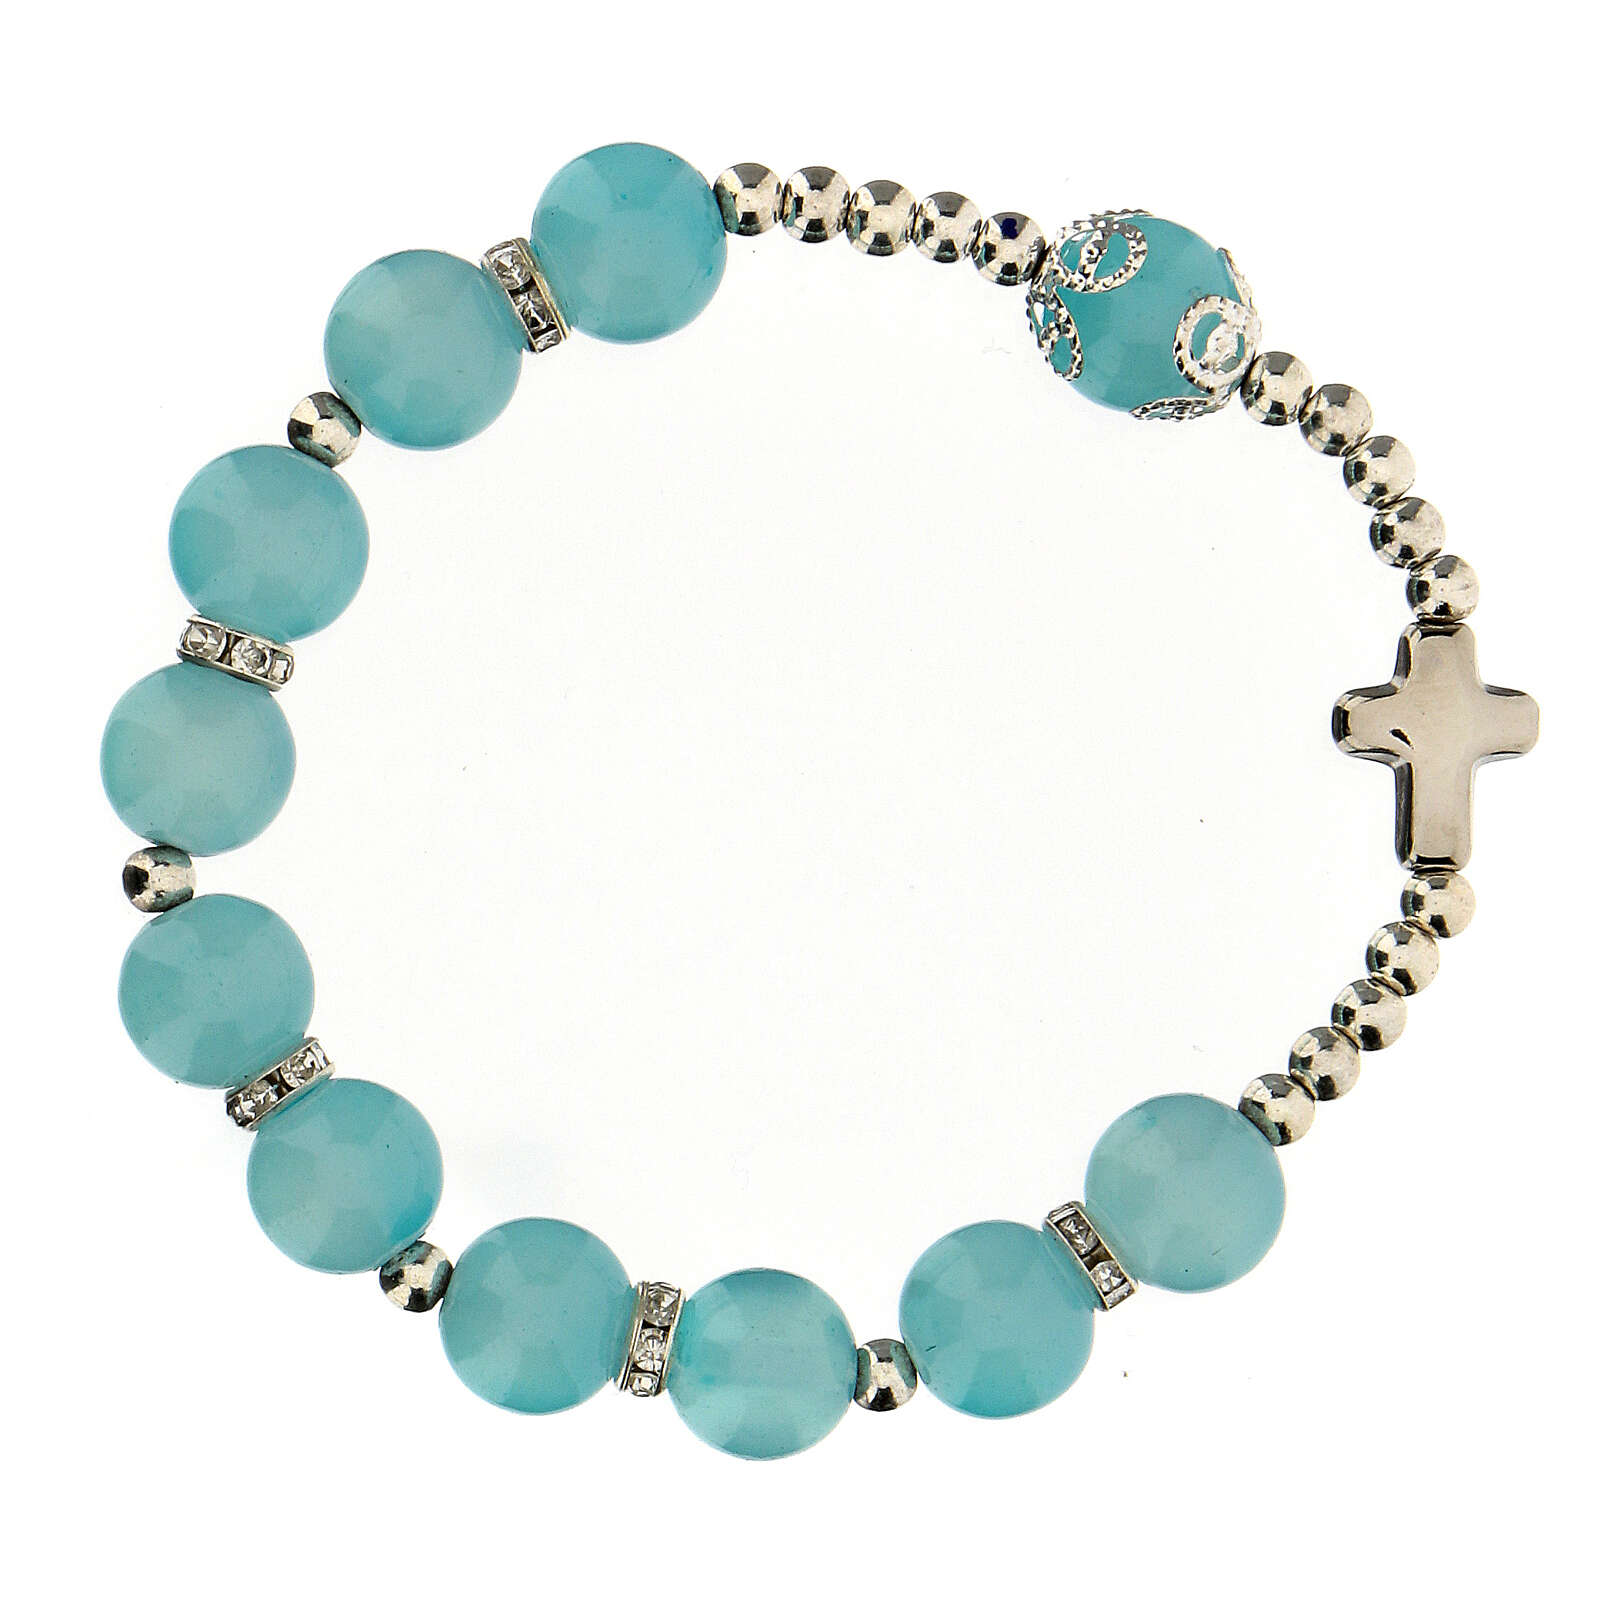 Decade rosary bracelet with round glass beads 10x10 mm 4